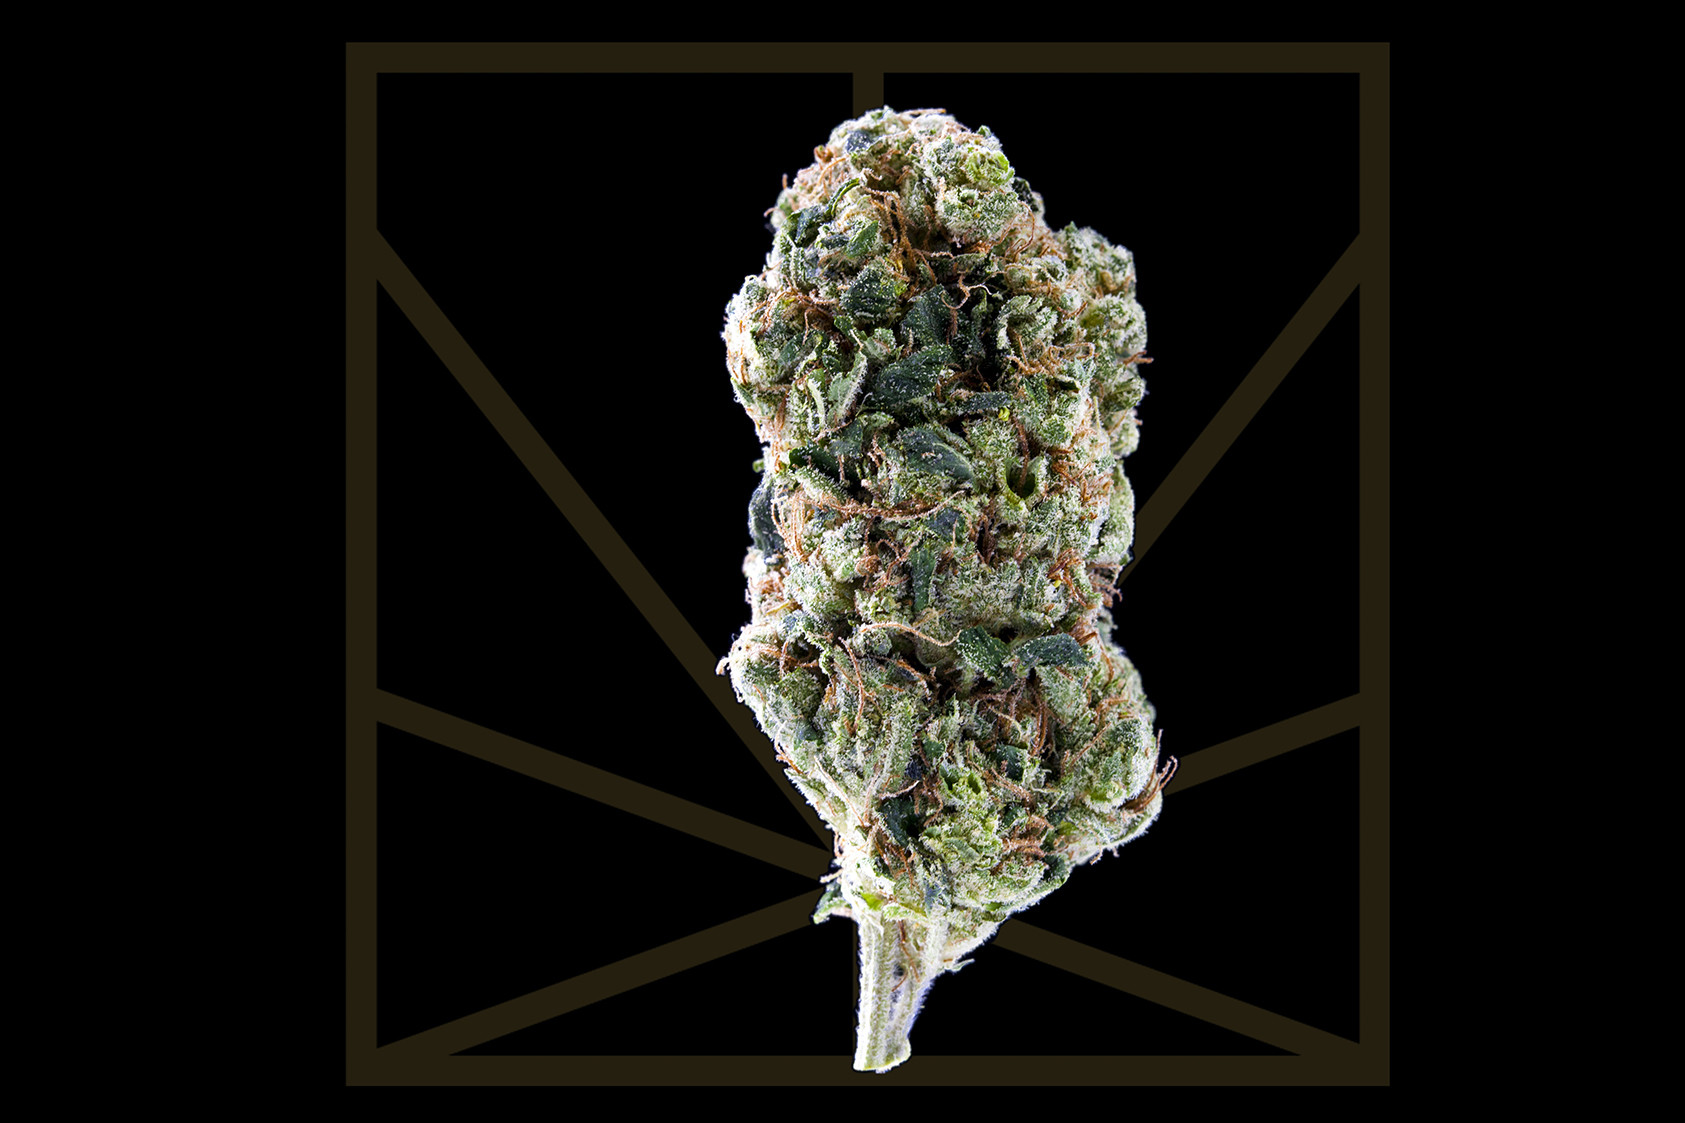 "<p><em>""A new world hangs outside the window - beautiful and strange.""</em></p>